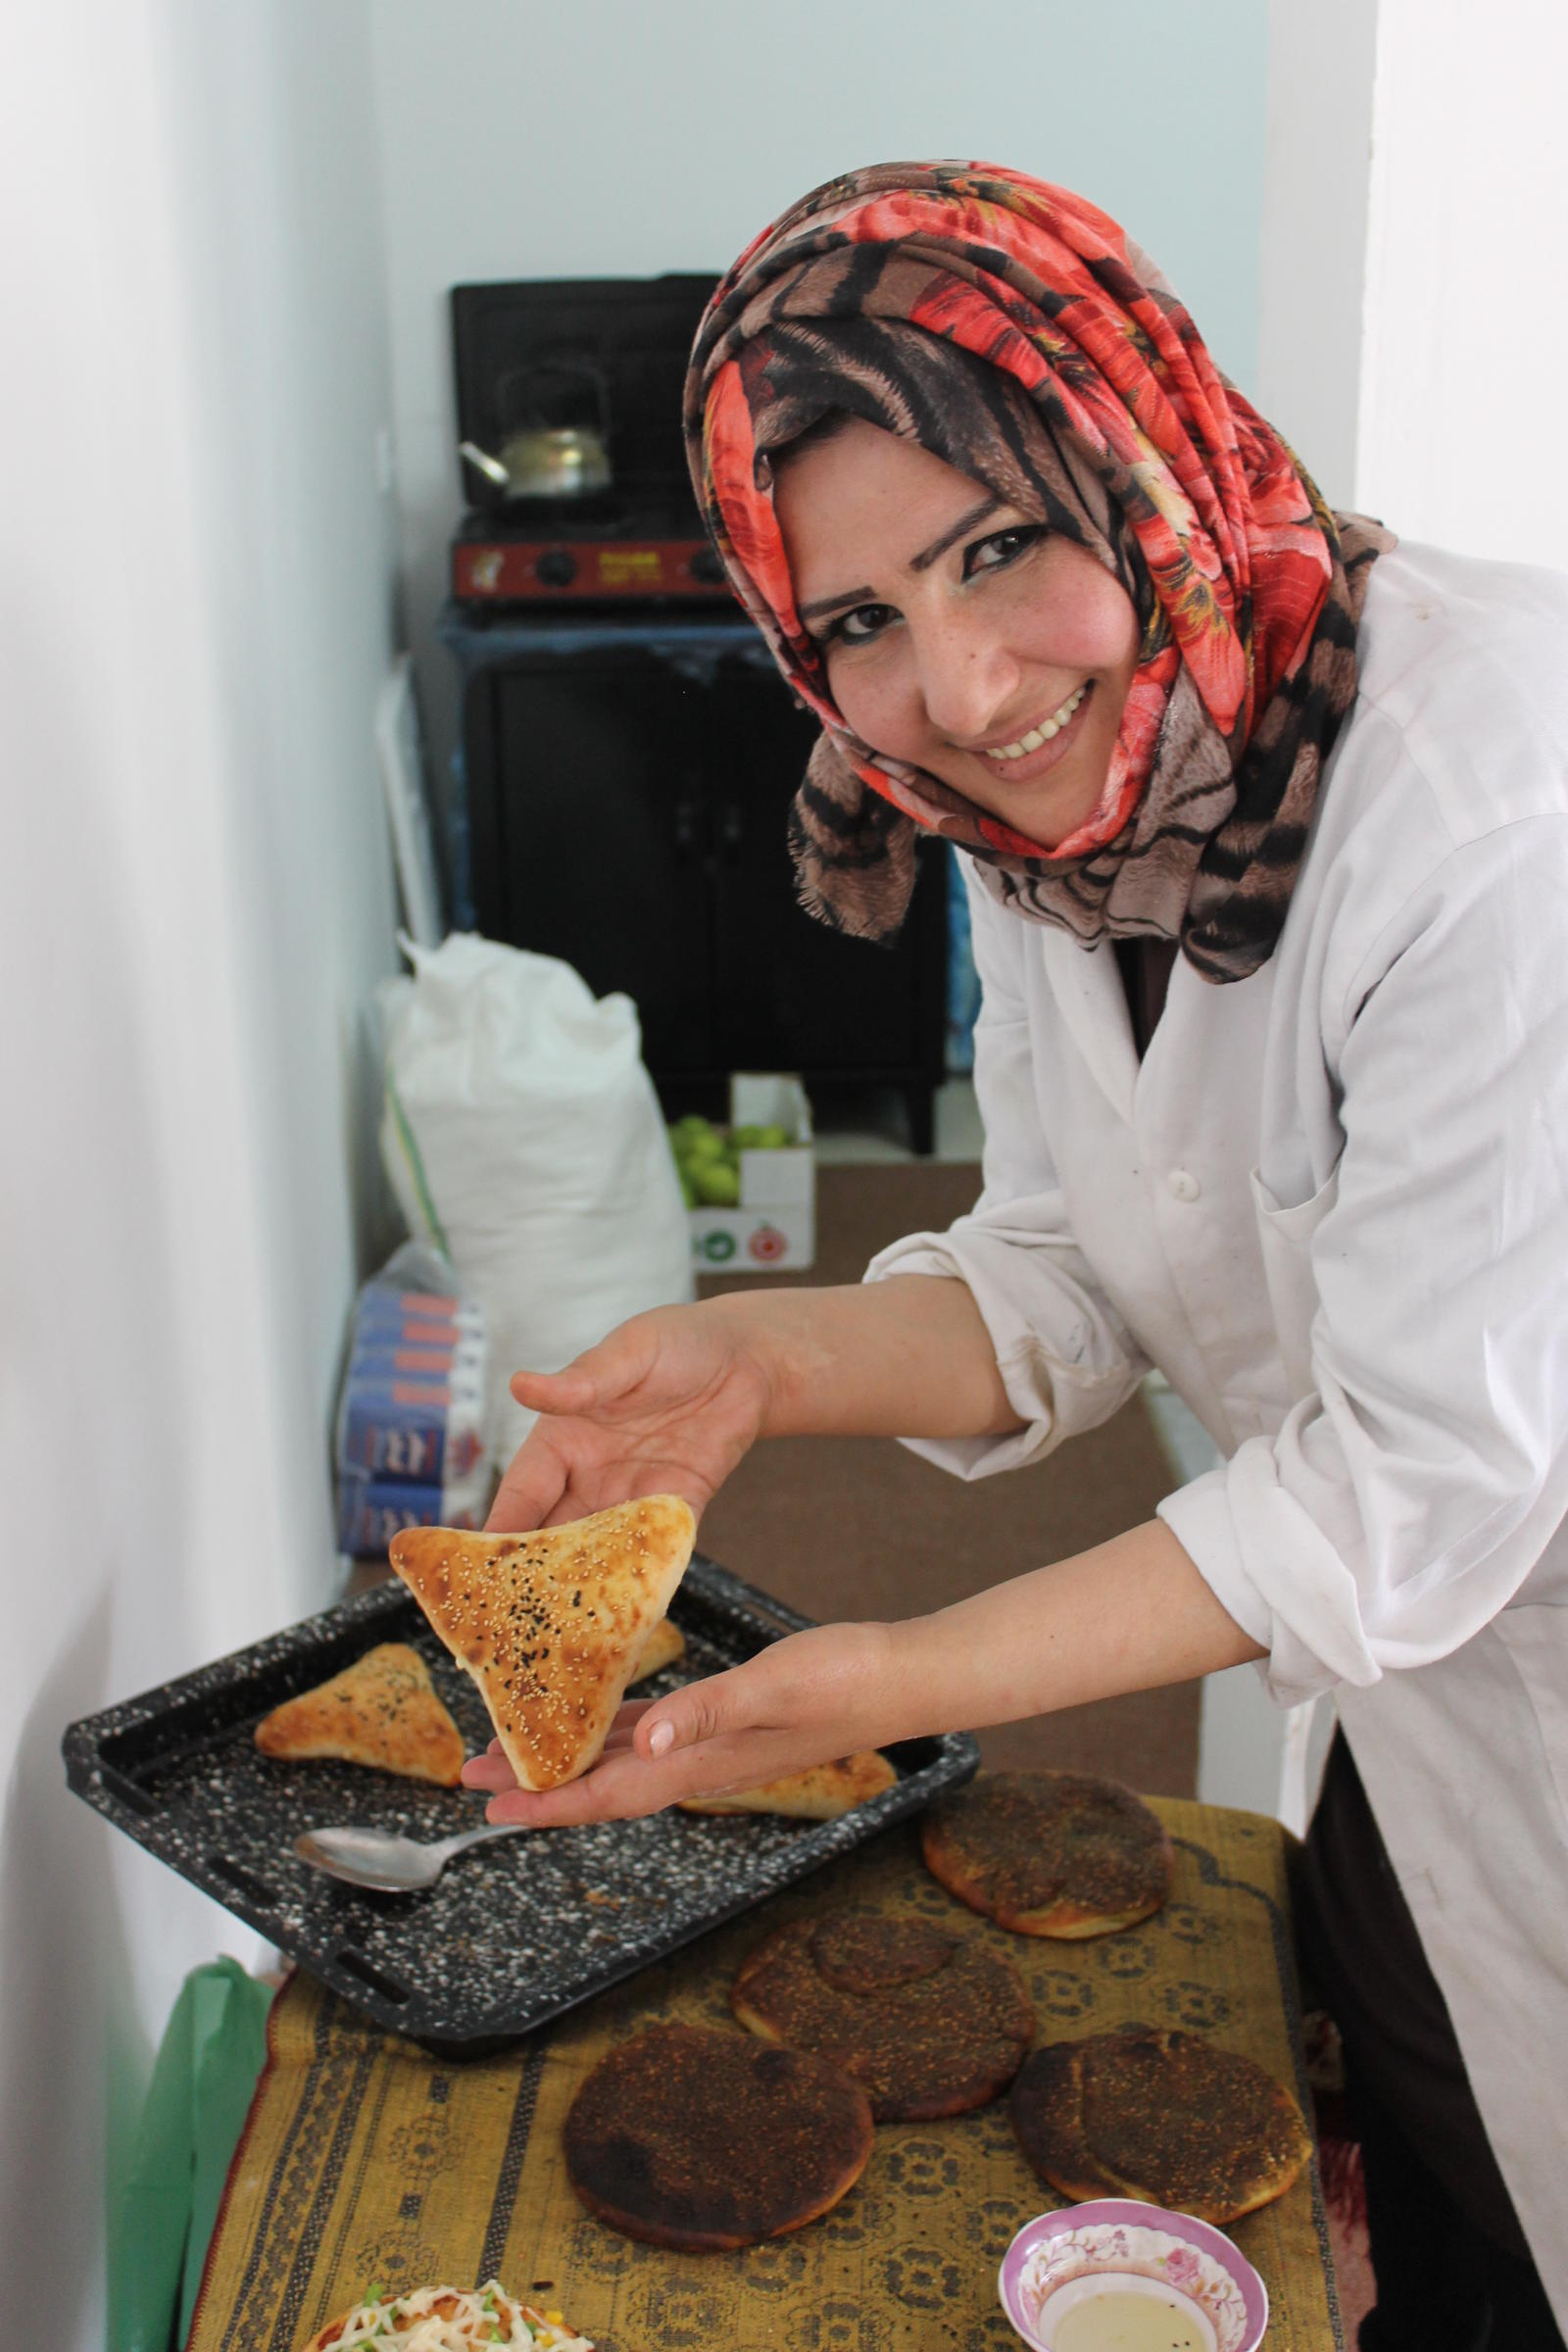 A woman prepares traditional, savoury baked goods called Mu' ajanat in the Halhoul Business shop